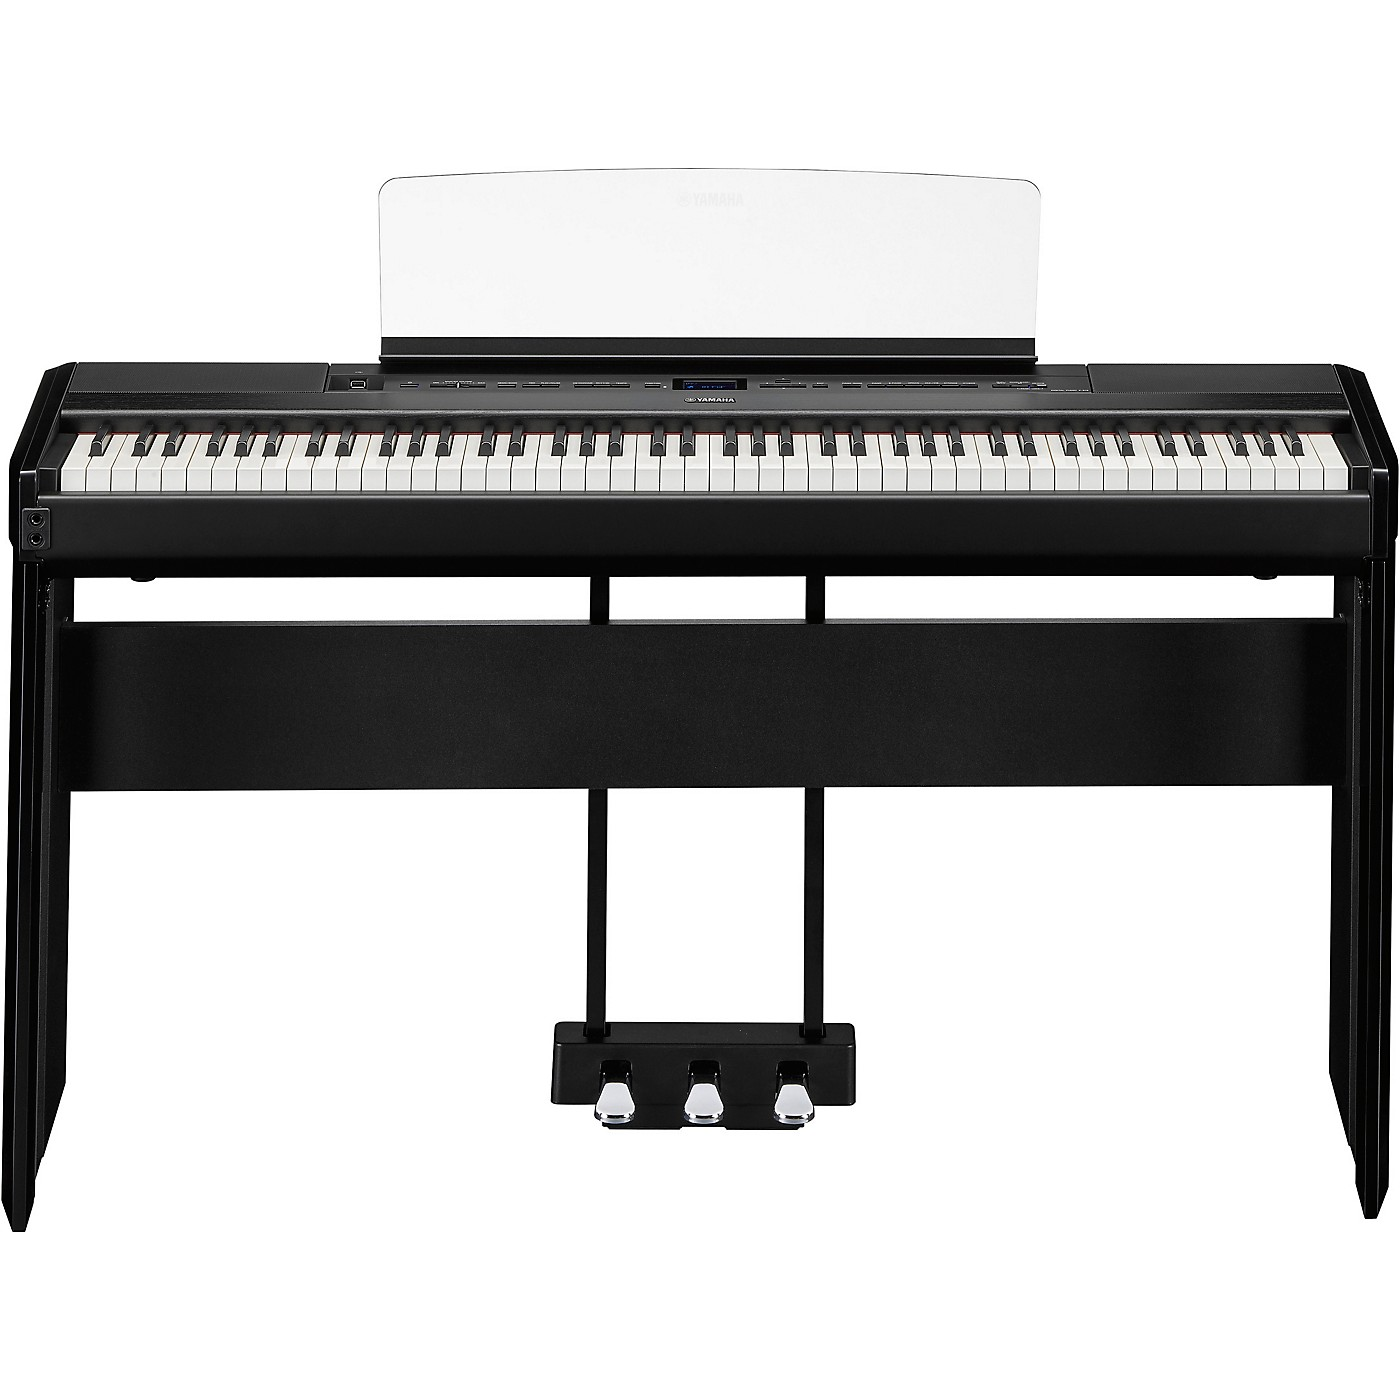 Yamaha P-515 Digital Piano with Matching Stand and LP-1 Pedal Unit thumbnail